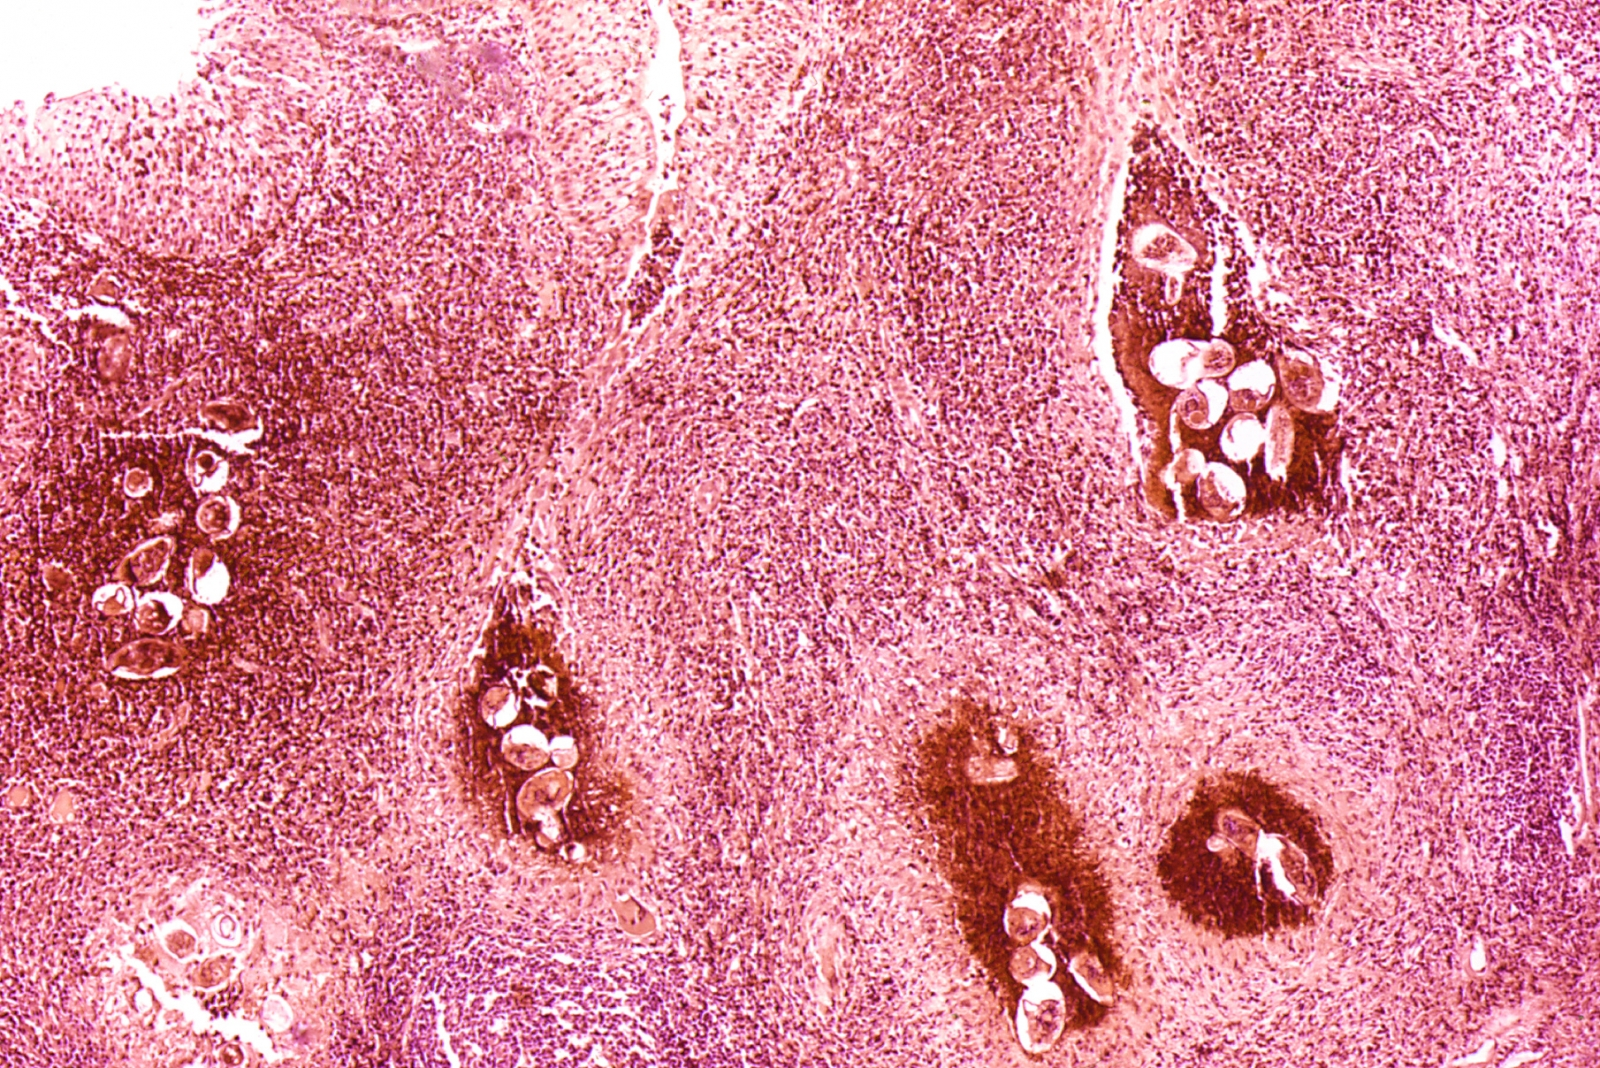 Bilharzia: photomicrography of infected bladder showing clusters of the parasite eggs